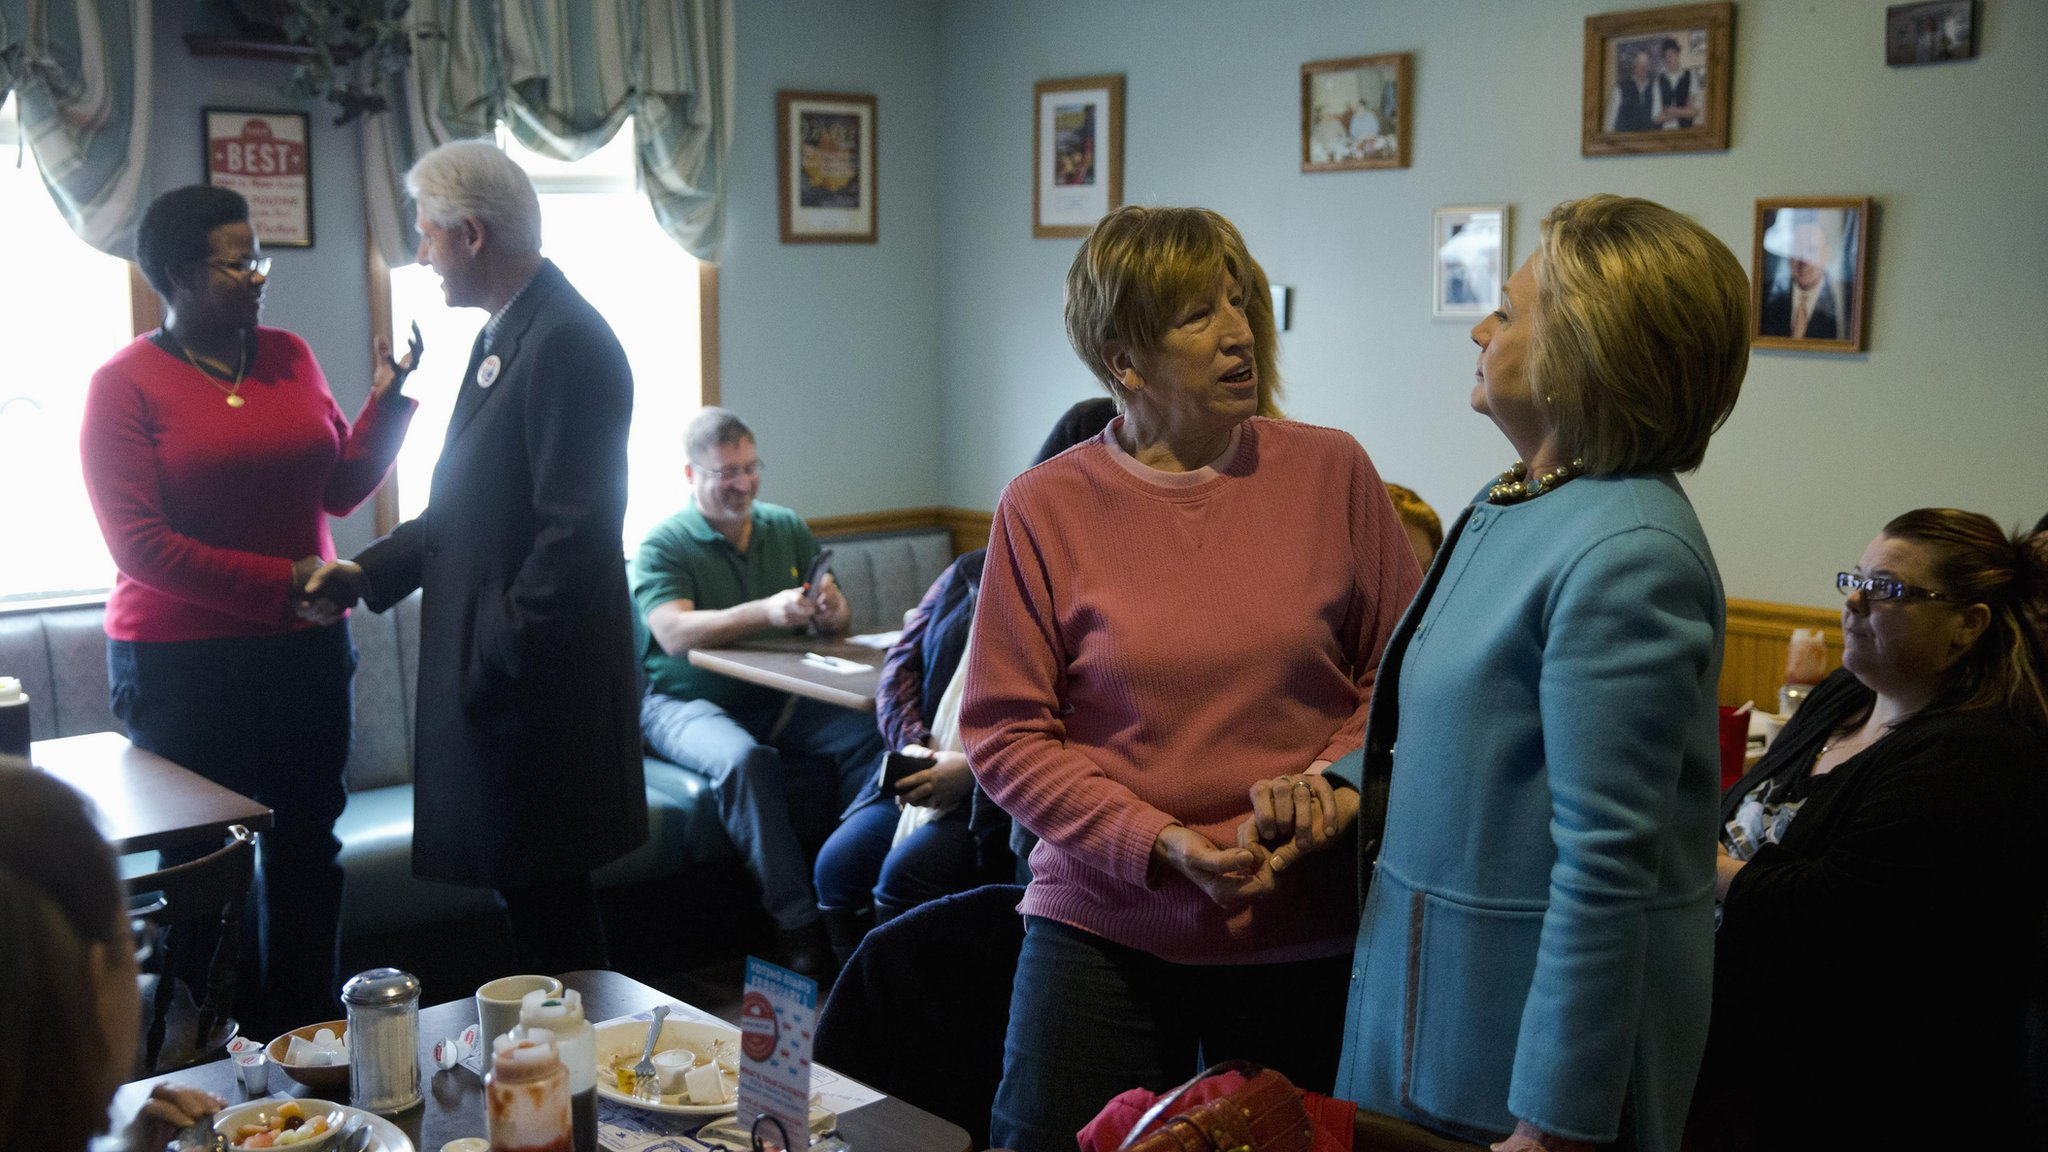 Hillary and Bill Clinton meet voters in a New Hampshire diner